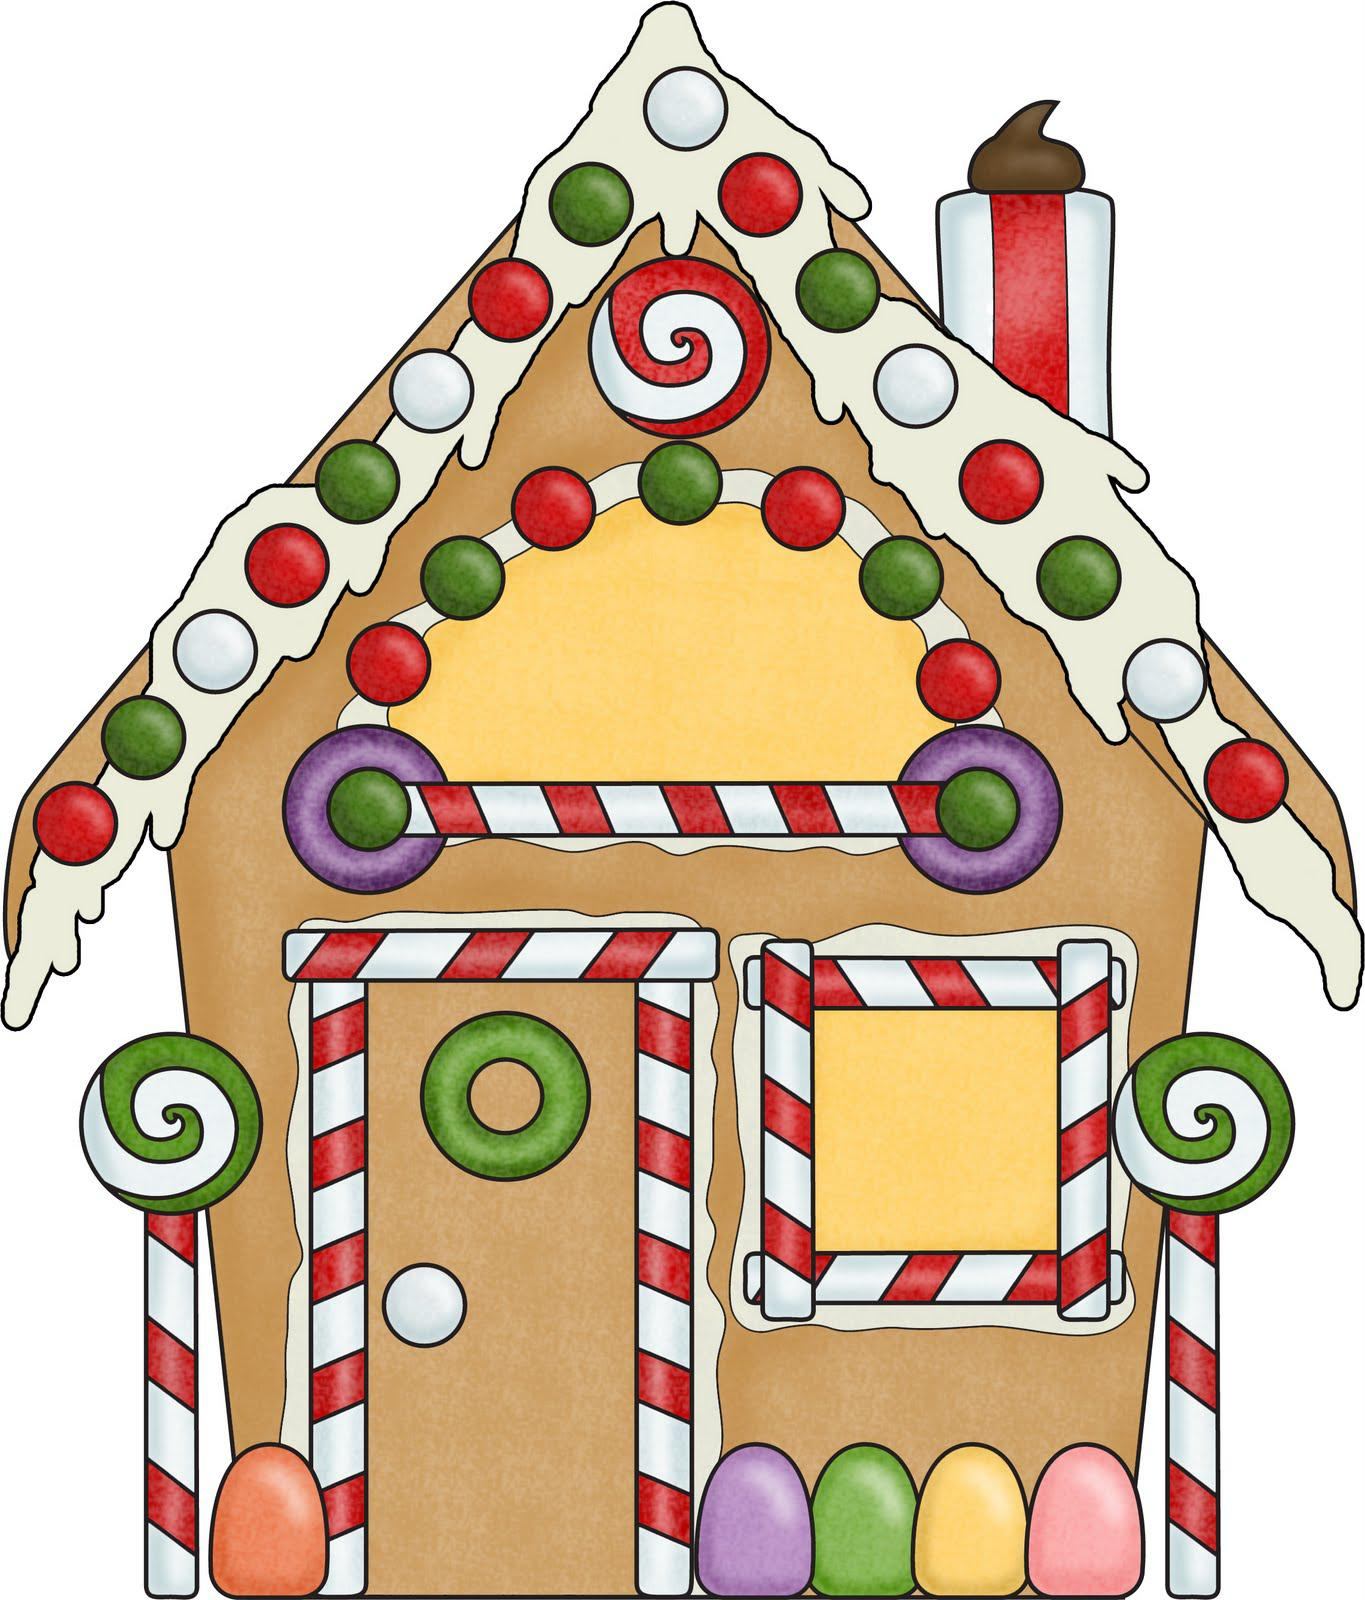 gingerbread house display challenge heyworth public library district rh heyworthlibrary com gingerbread house clipart images gingerbread house clipart images